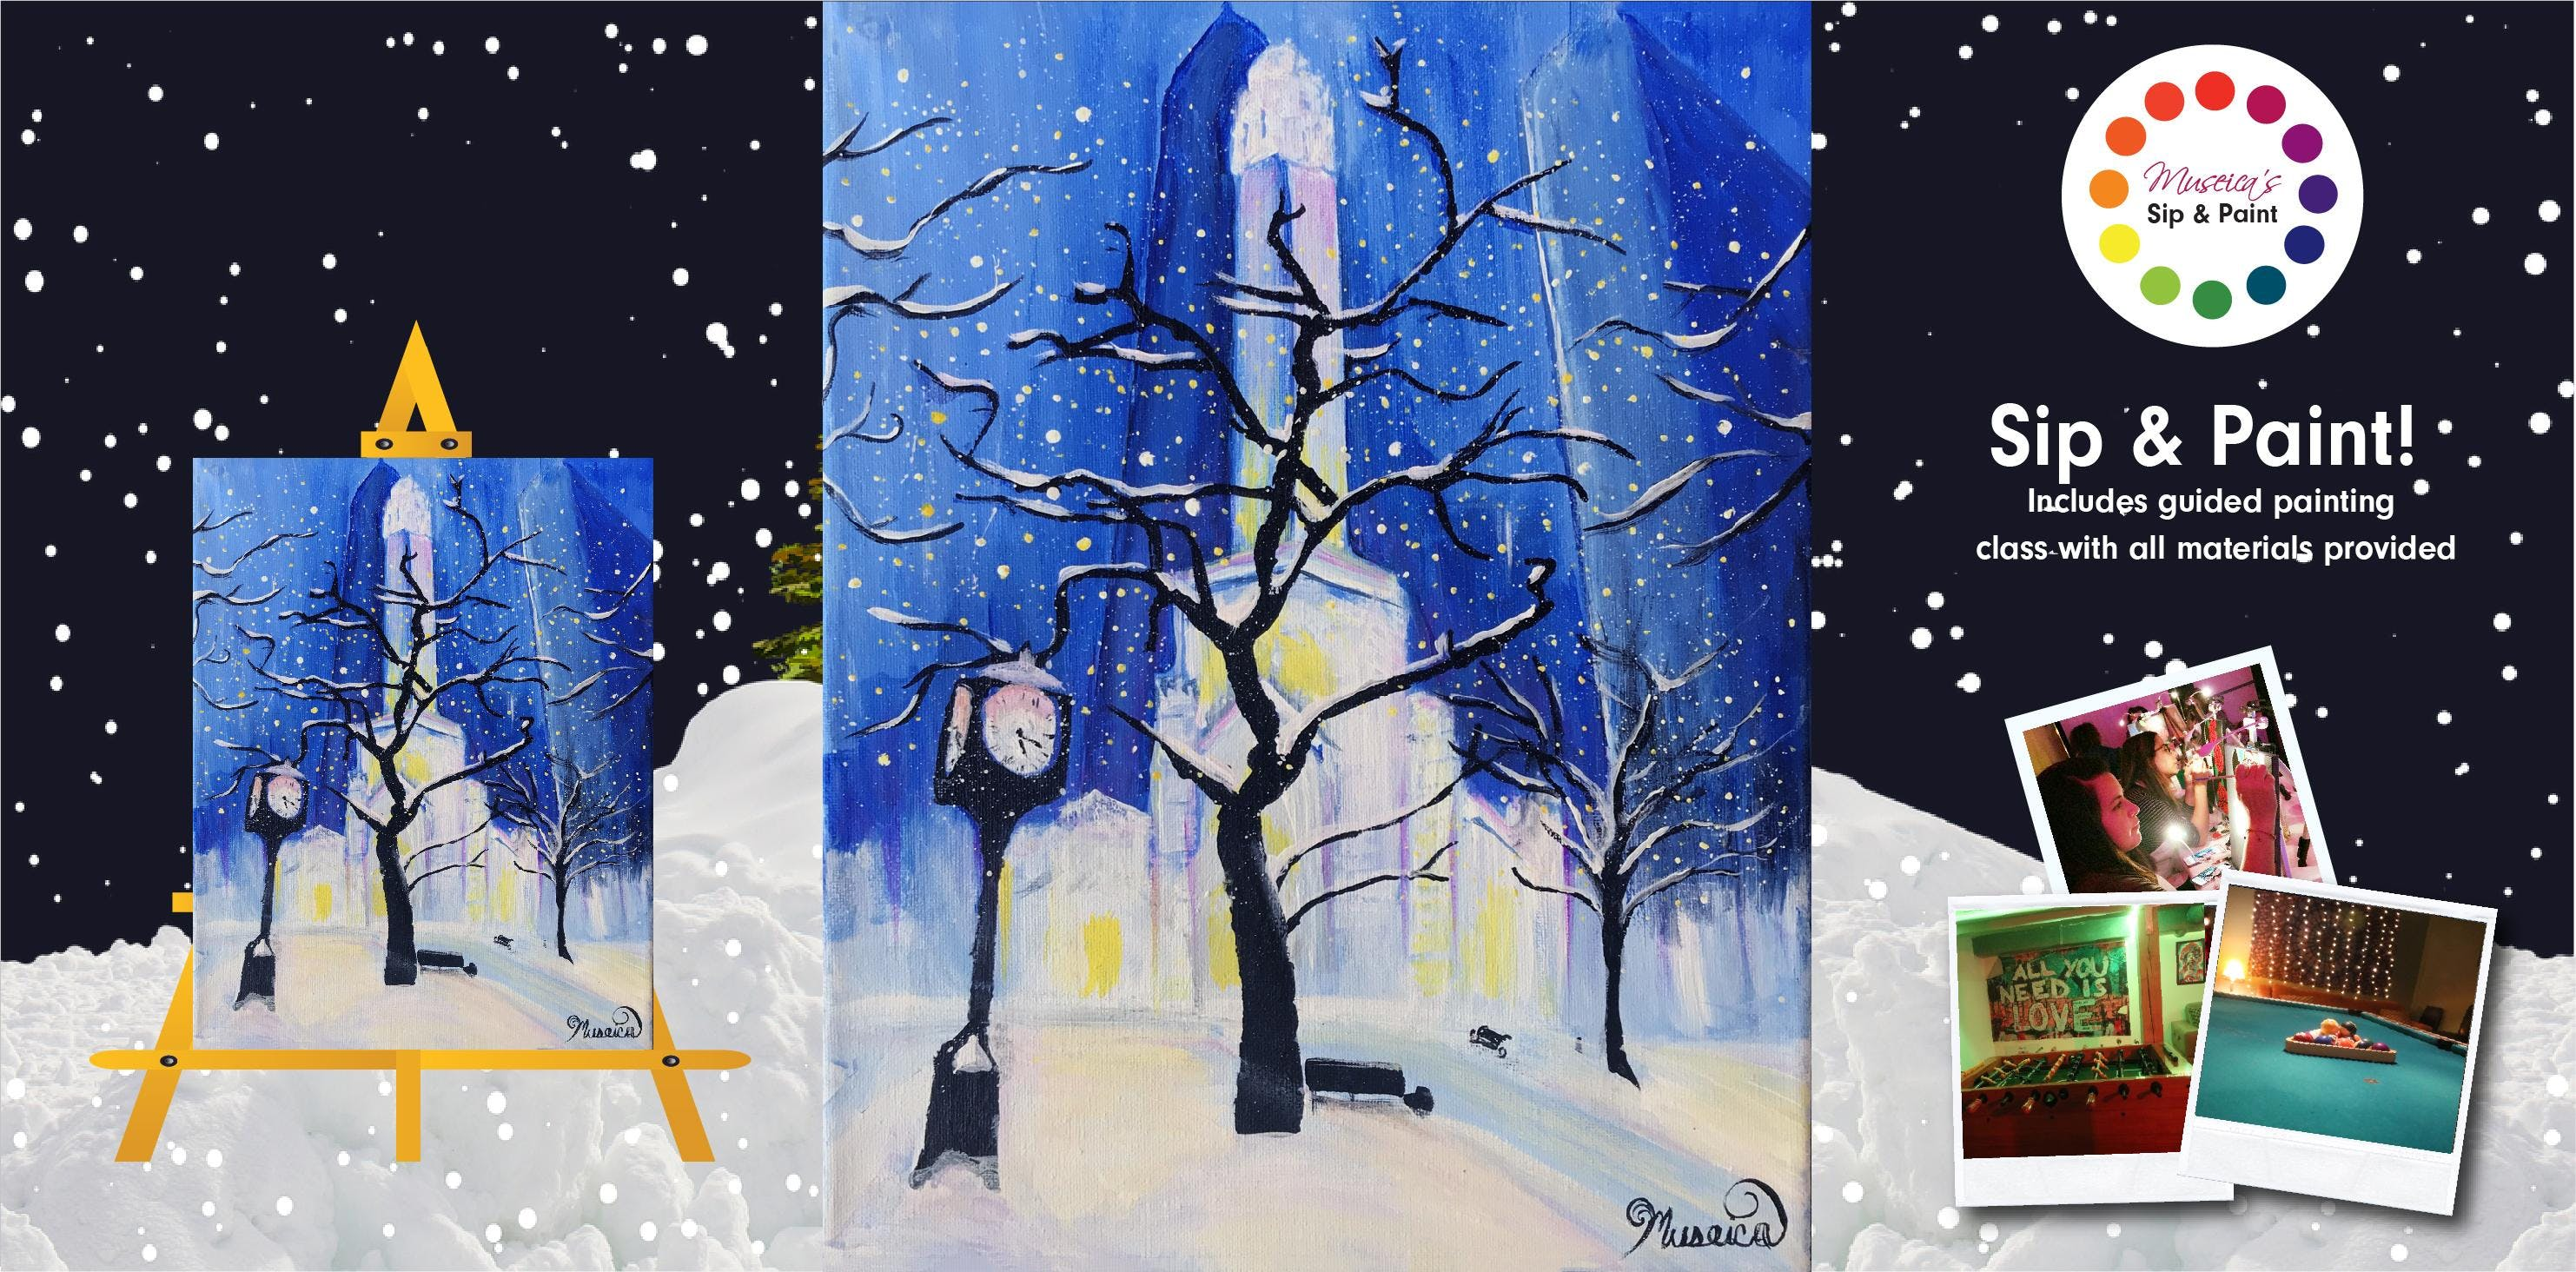 Museica's BYOB Sip & Paint - Chicago Winter W